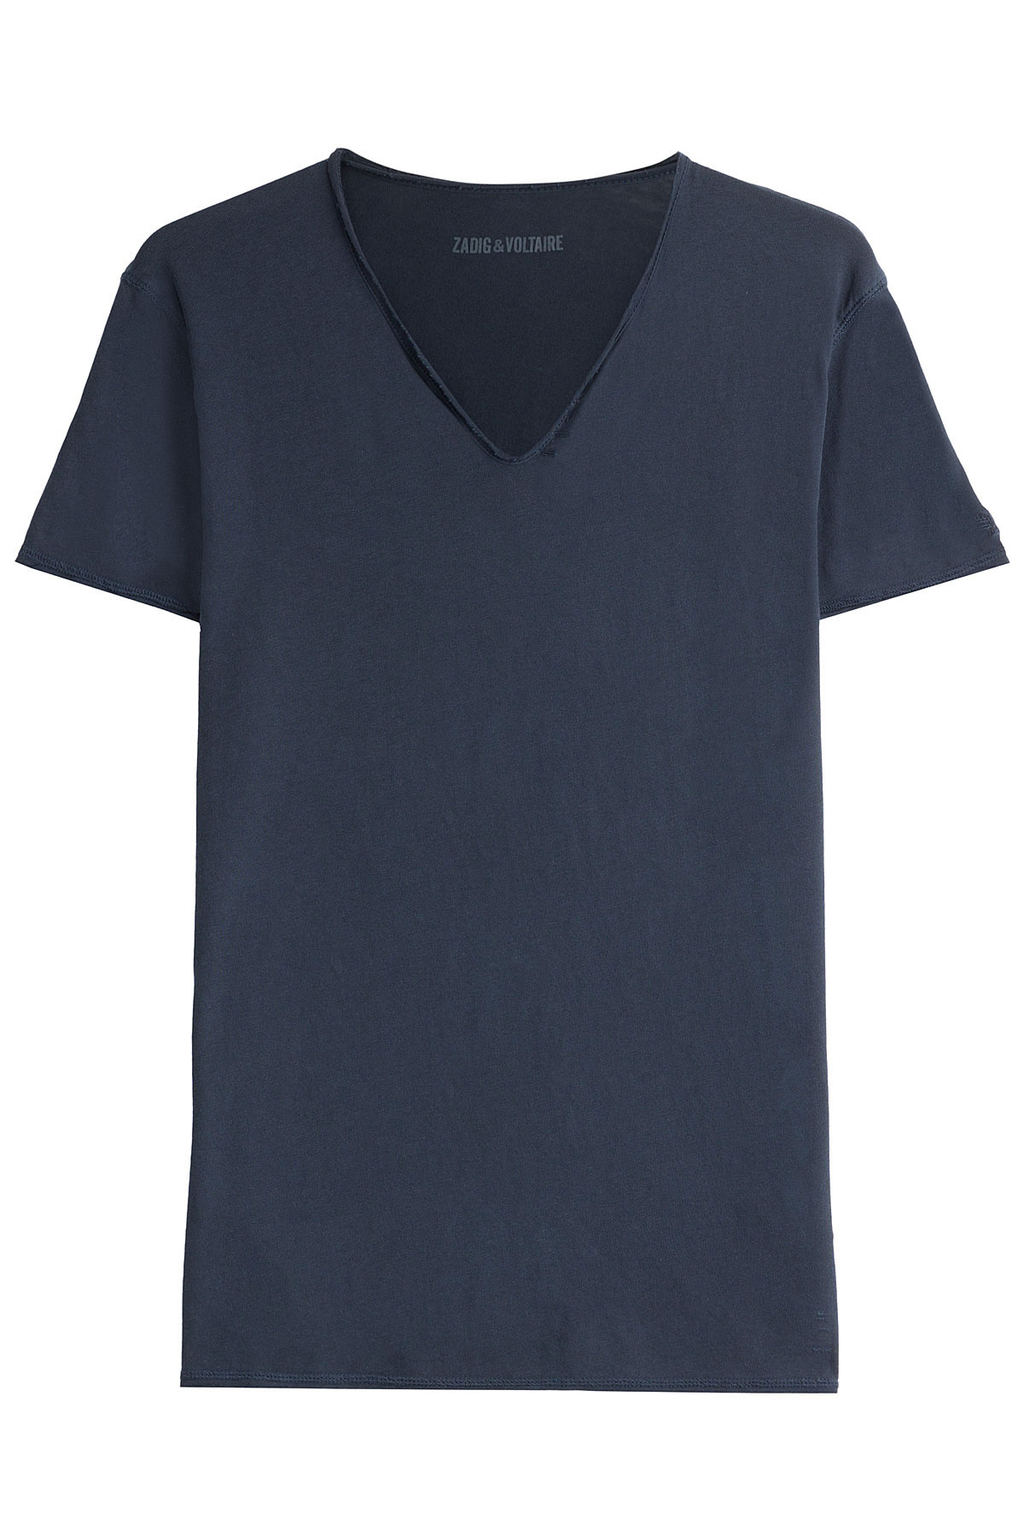 Monas Mc Overdyed T Shirt Blue - neckline: v-neck; pattern: plain; style: t-shirt; predominant colour: navy; occasions: casual; length: standard; fibres: cotton - 100%; fit: straight cut; sleeve length: short sleeve; sleeve style: standard; texture group: cotton feel fabrics; pattern type: fabric; season: a/w 2016